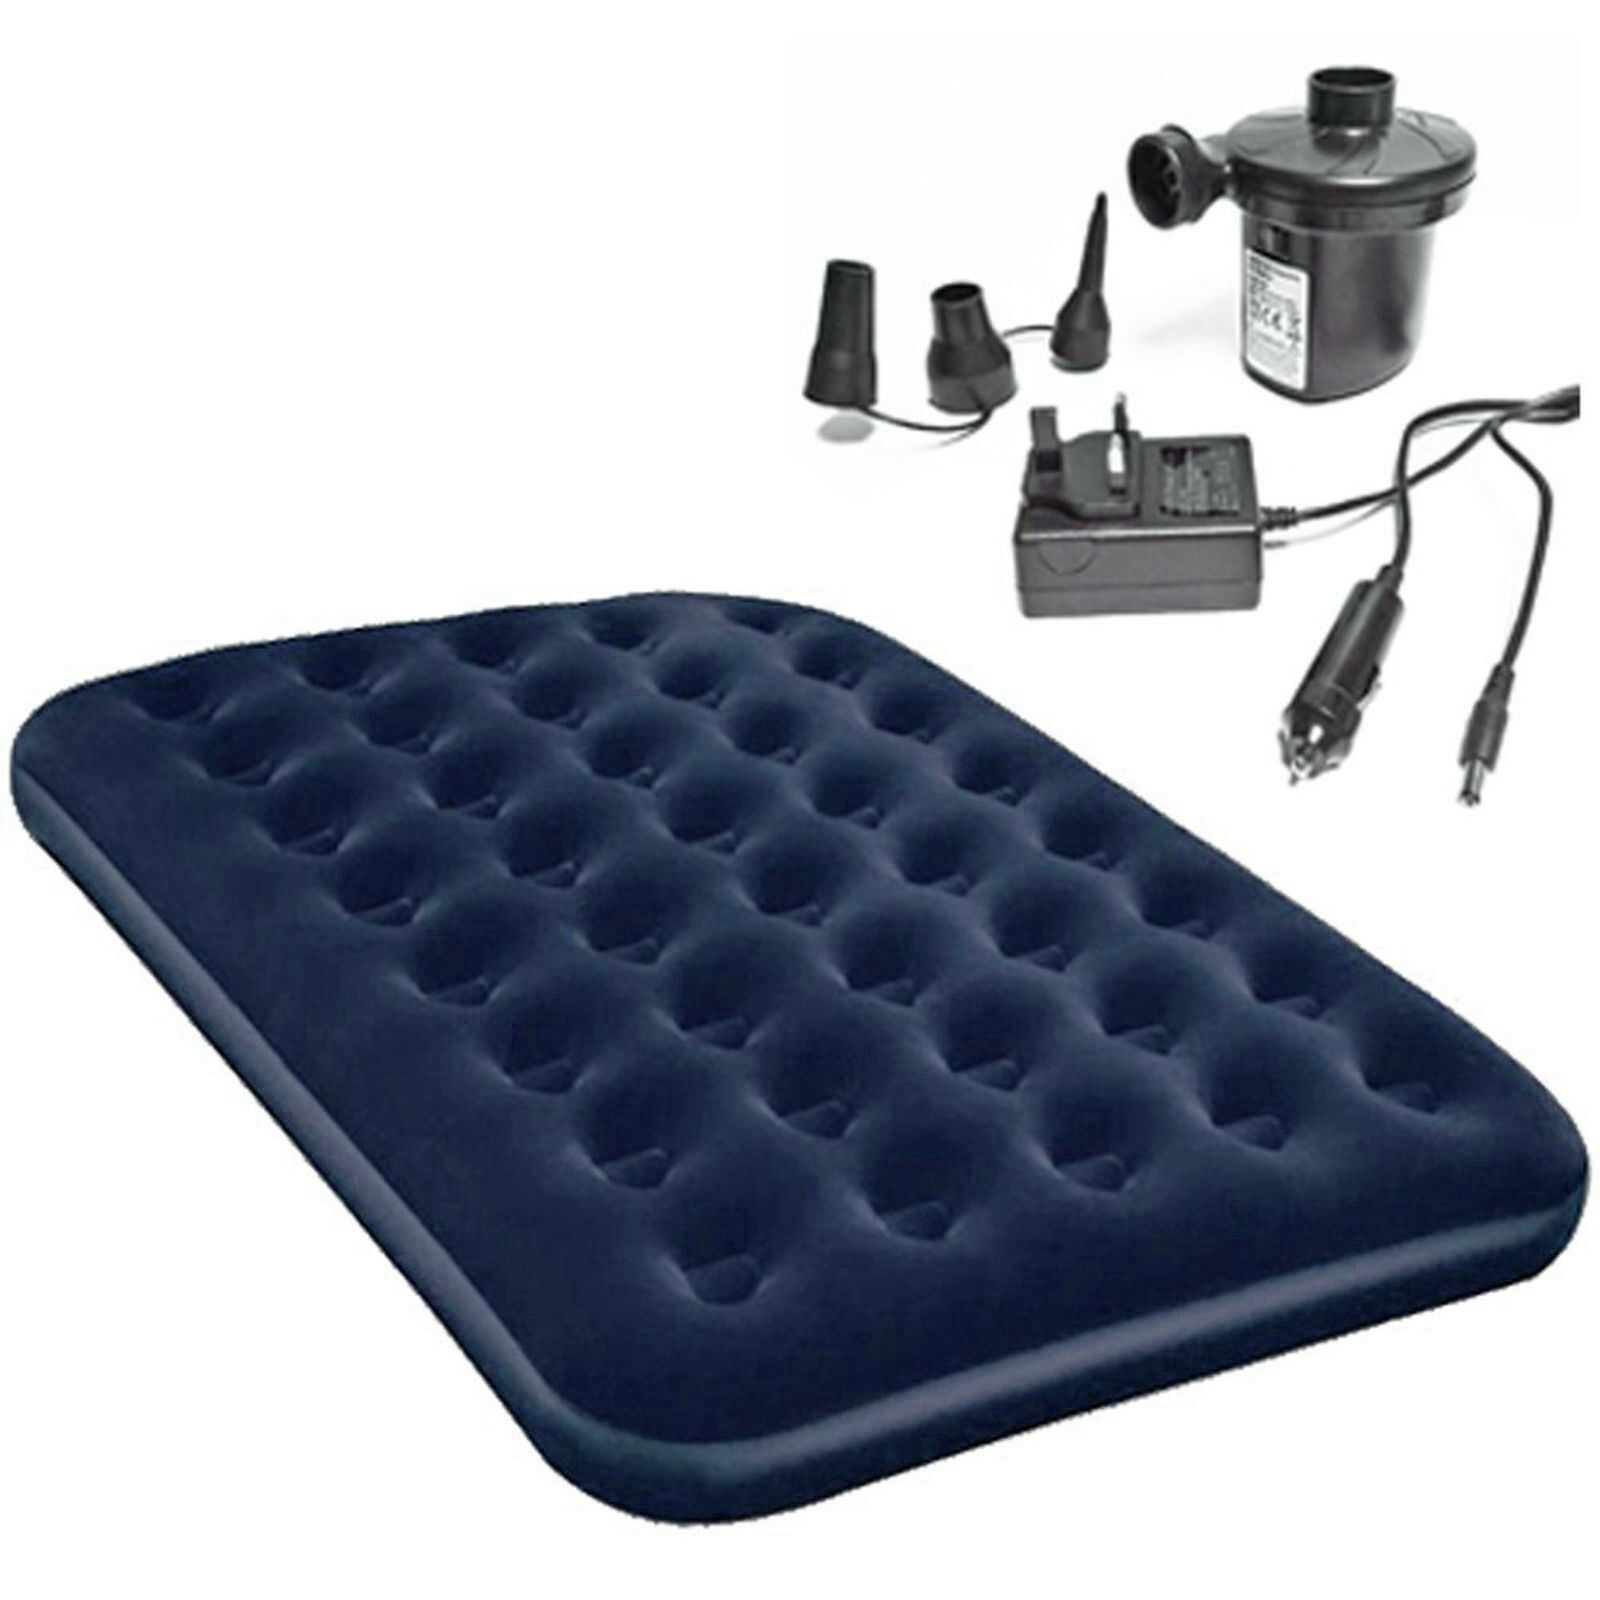 Double Single AirBed With Electric AirPump Air Bed Mattress Pump Inflator - blueE